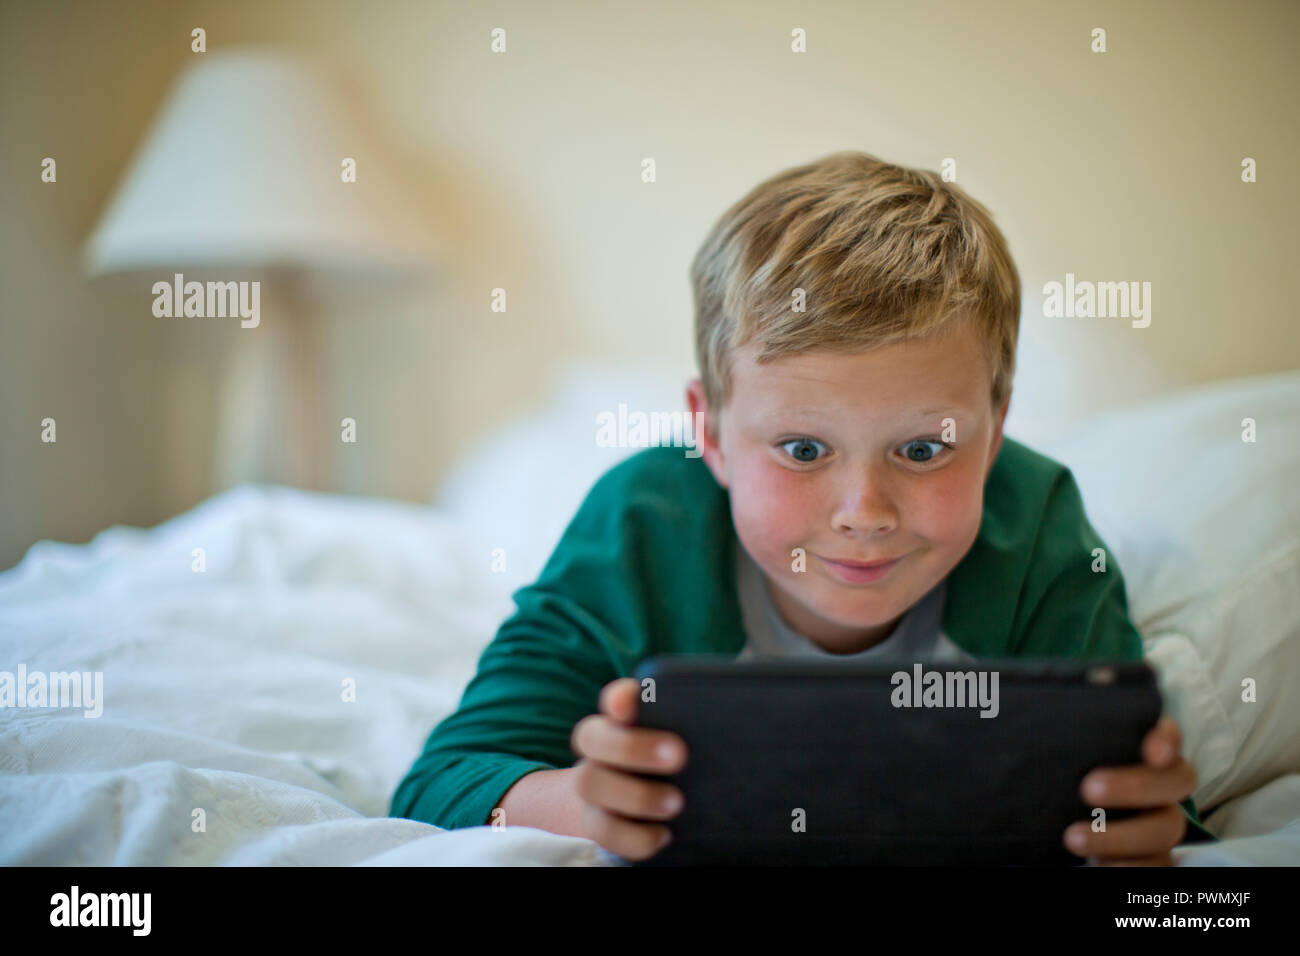 Young boy pulling a silly face while playing with a digital tablet. - Stock Image